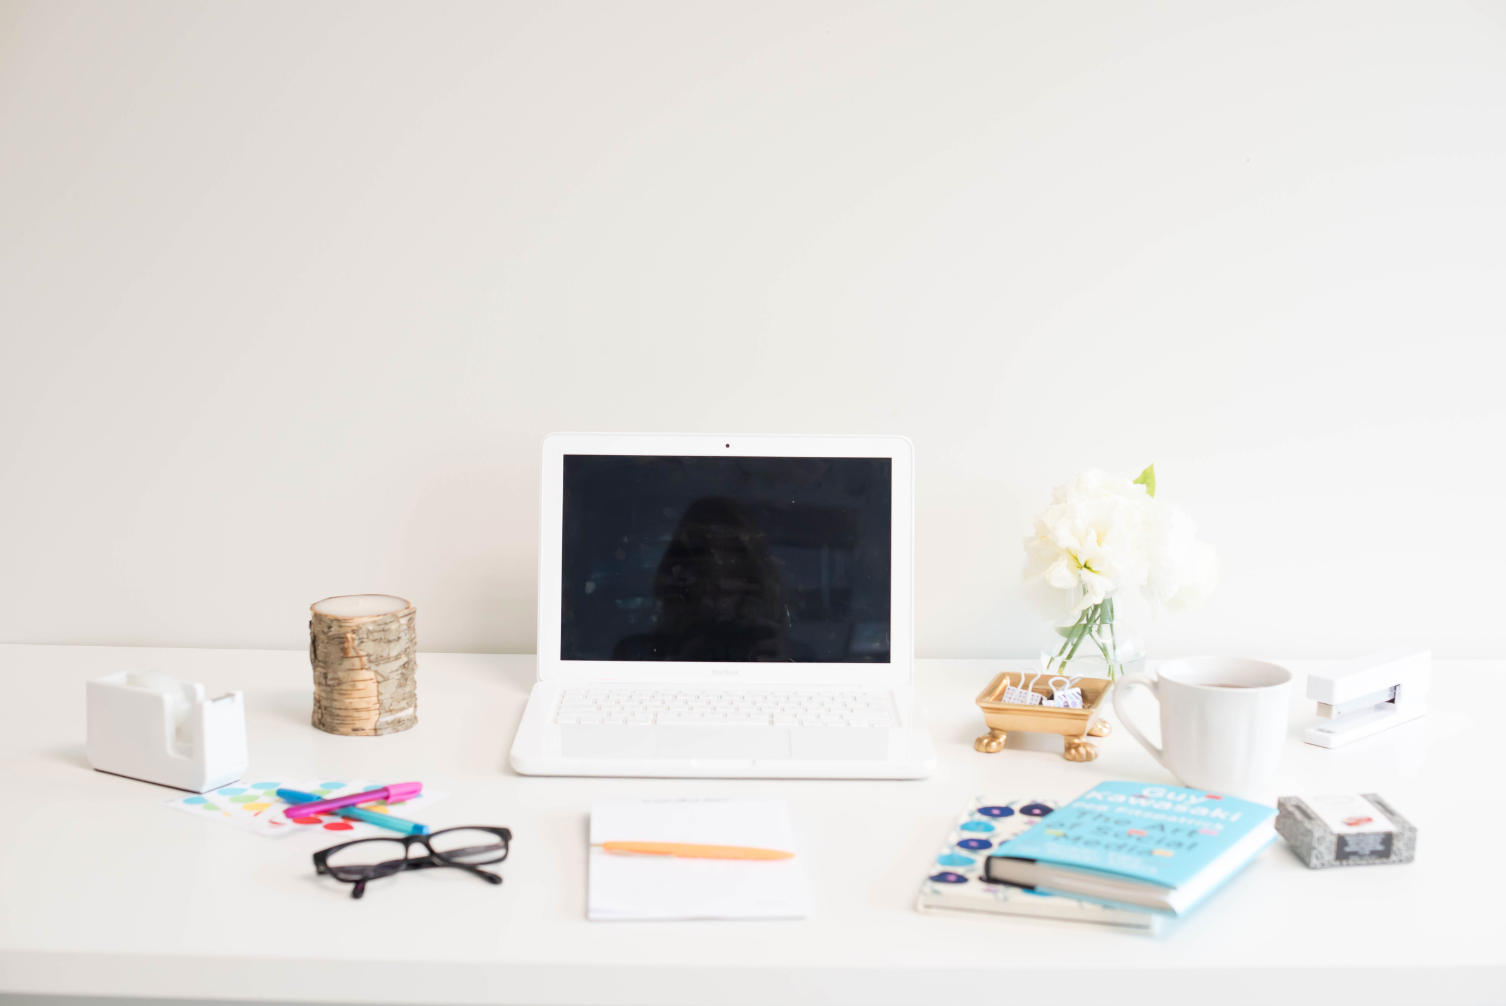 10 Tips on Working From Home